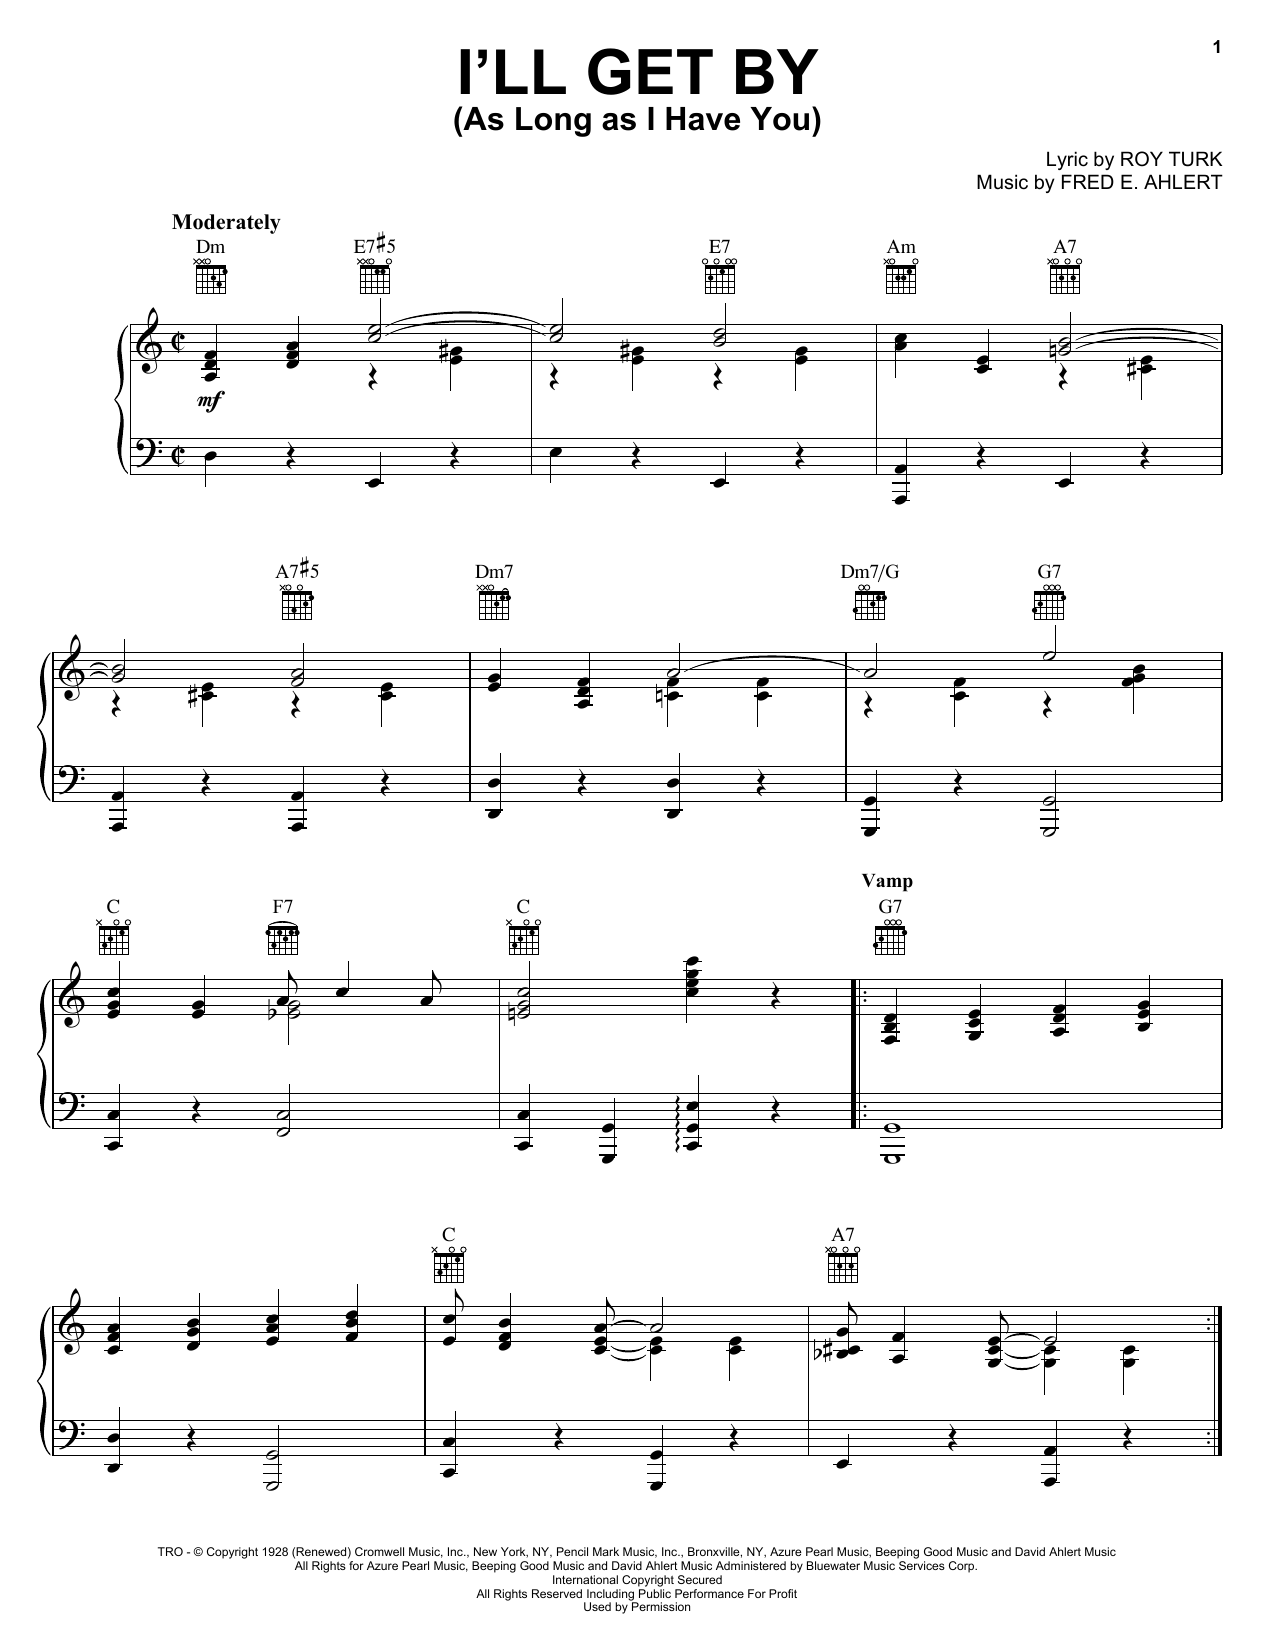 Billie Holiday I'll Get By (As Long As I Have You) sheet music notes and chords. Download Printable PDF.